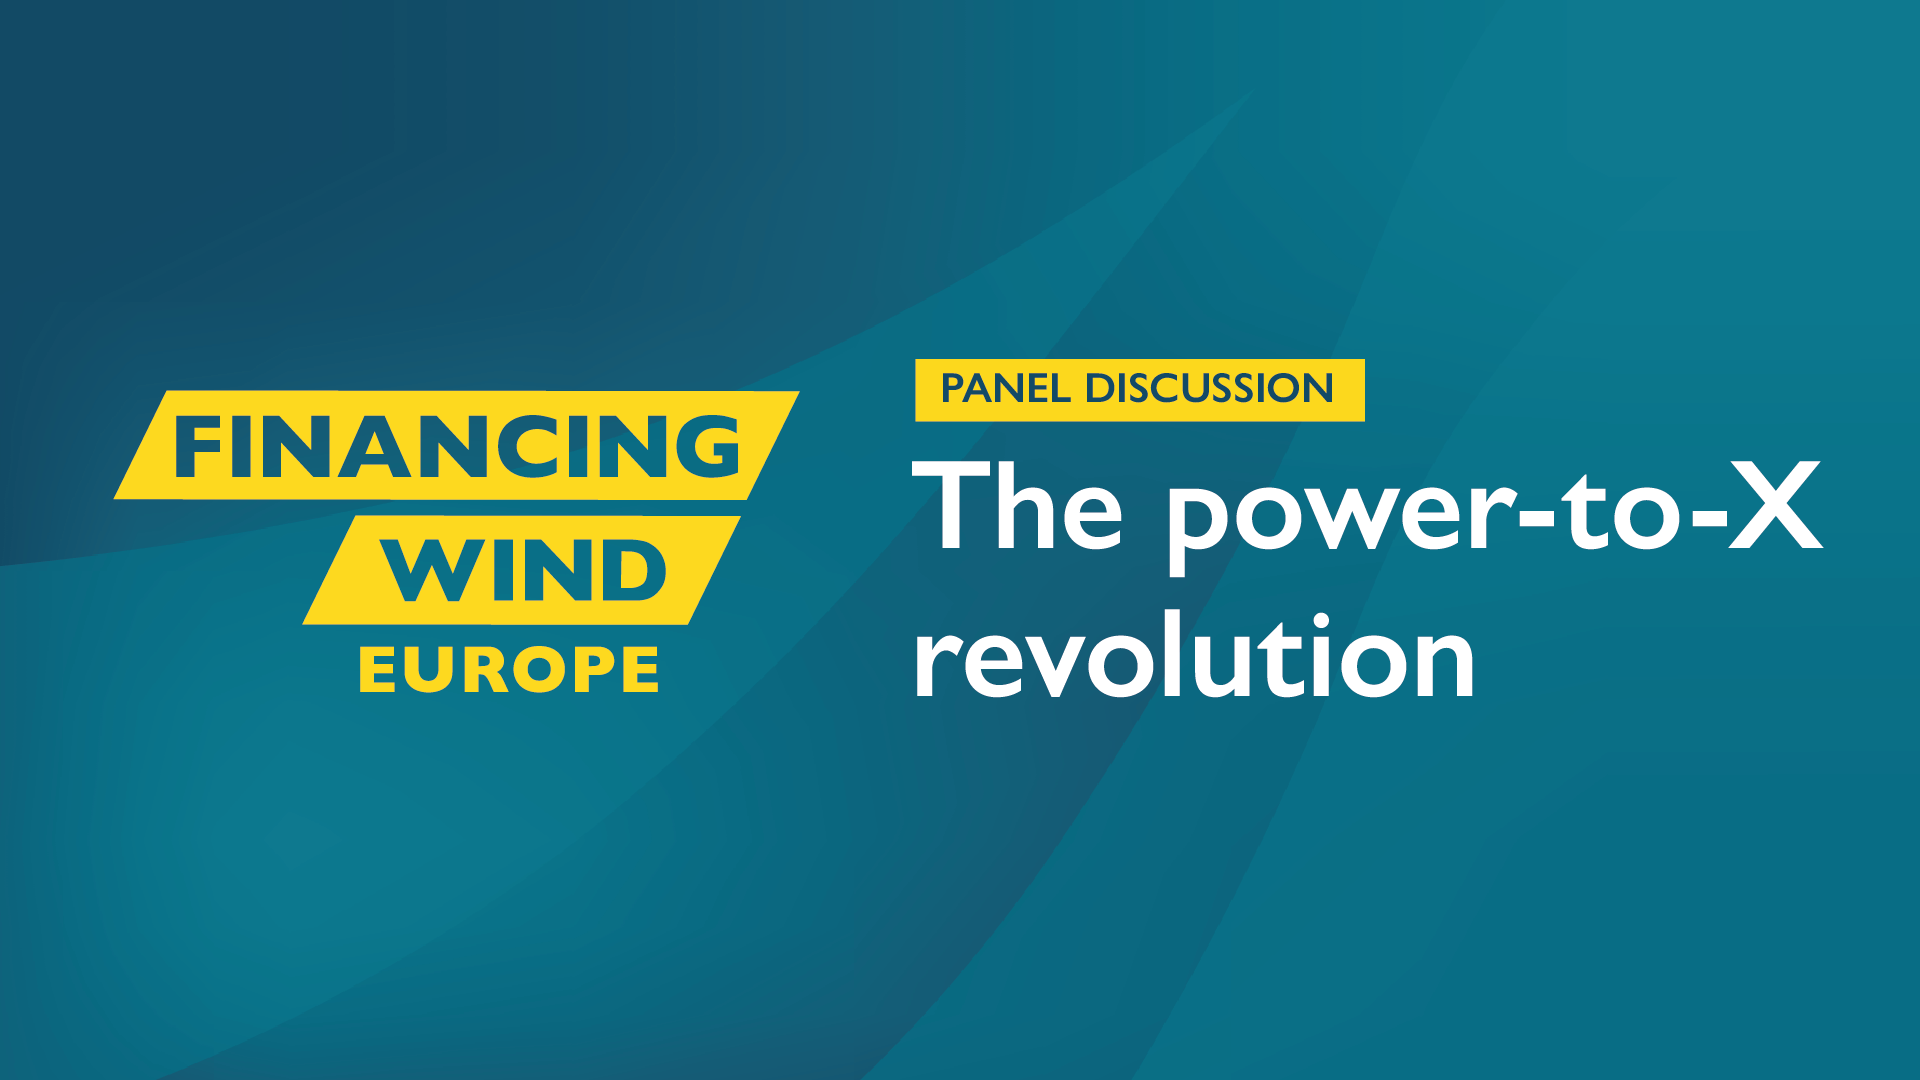 Panel Discussion: The power-to-X revolution